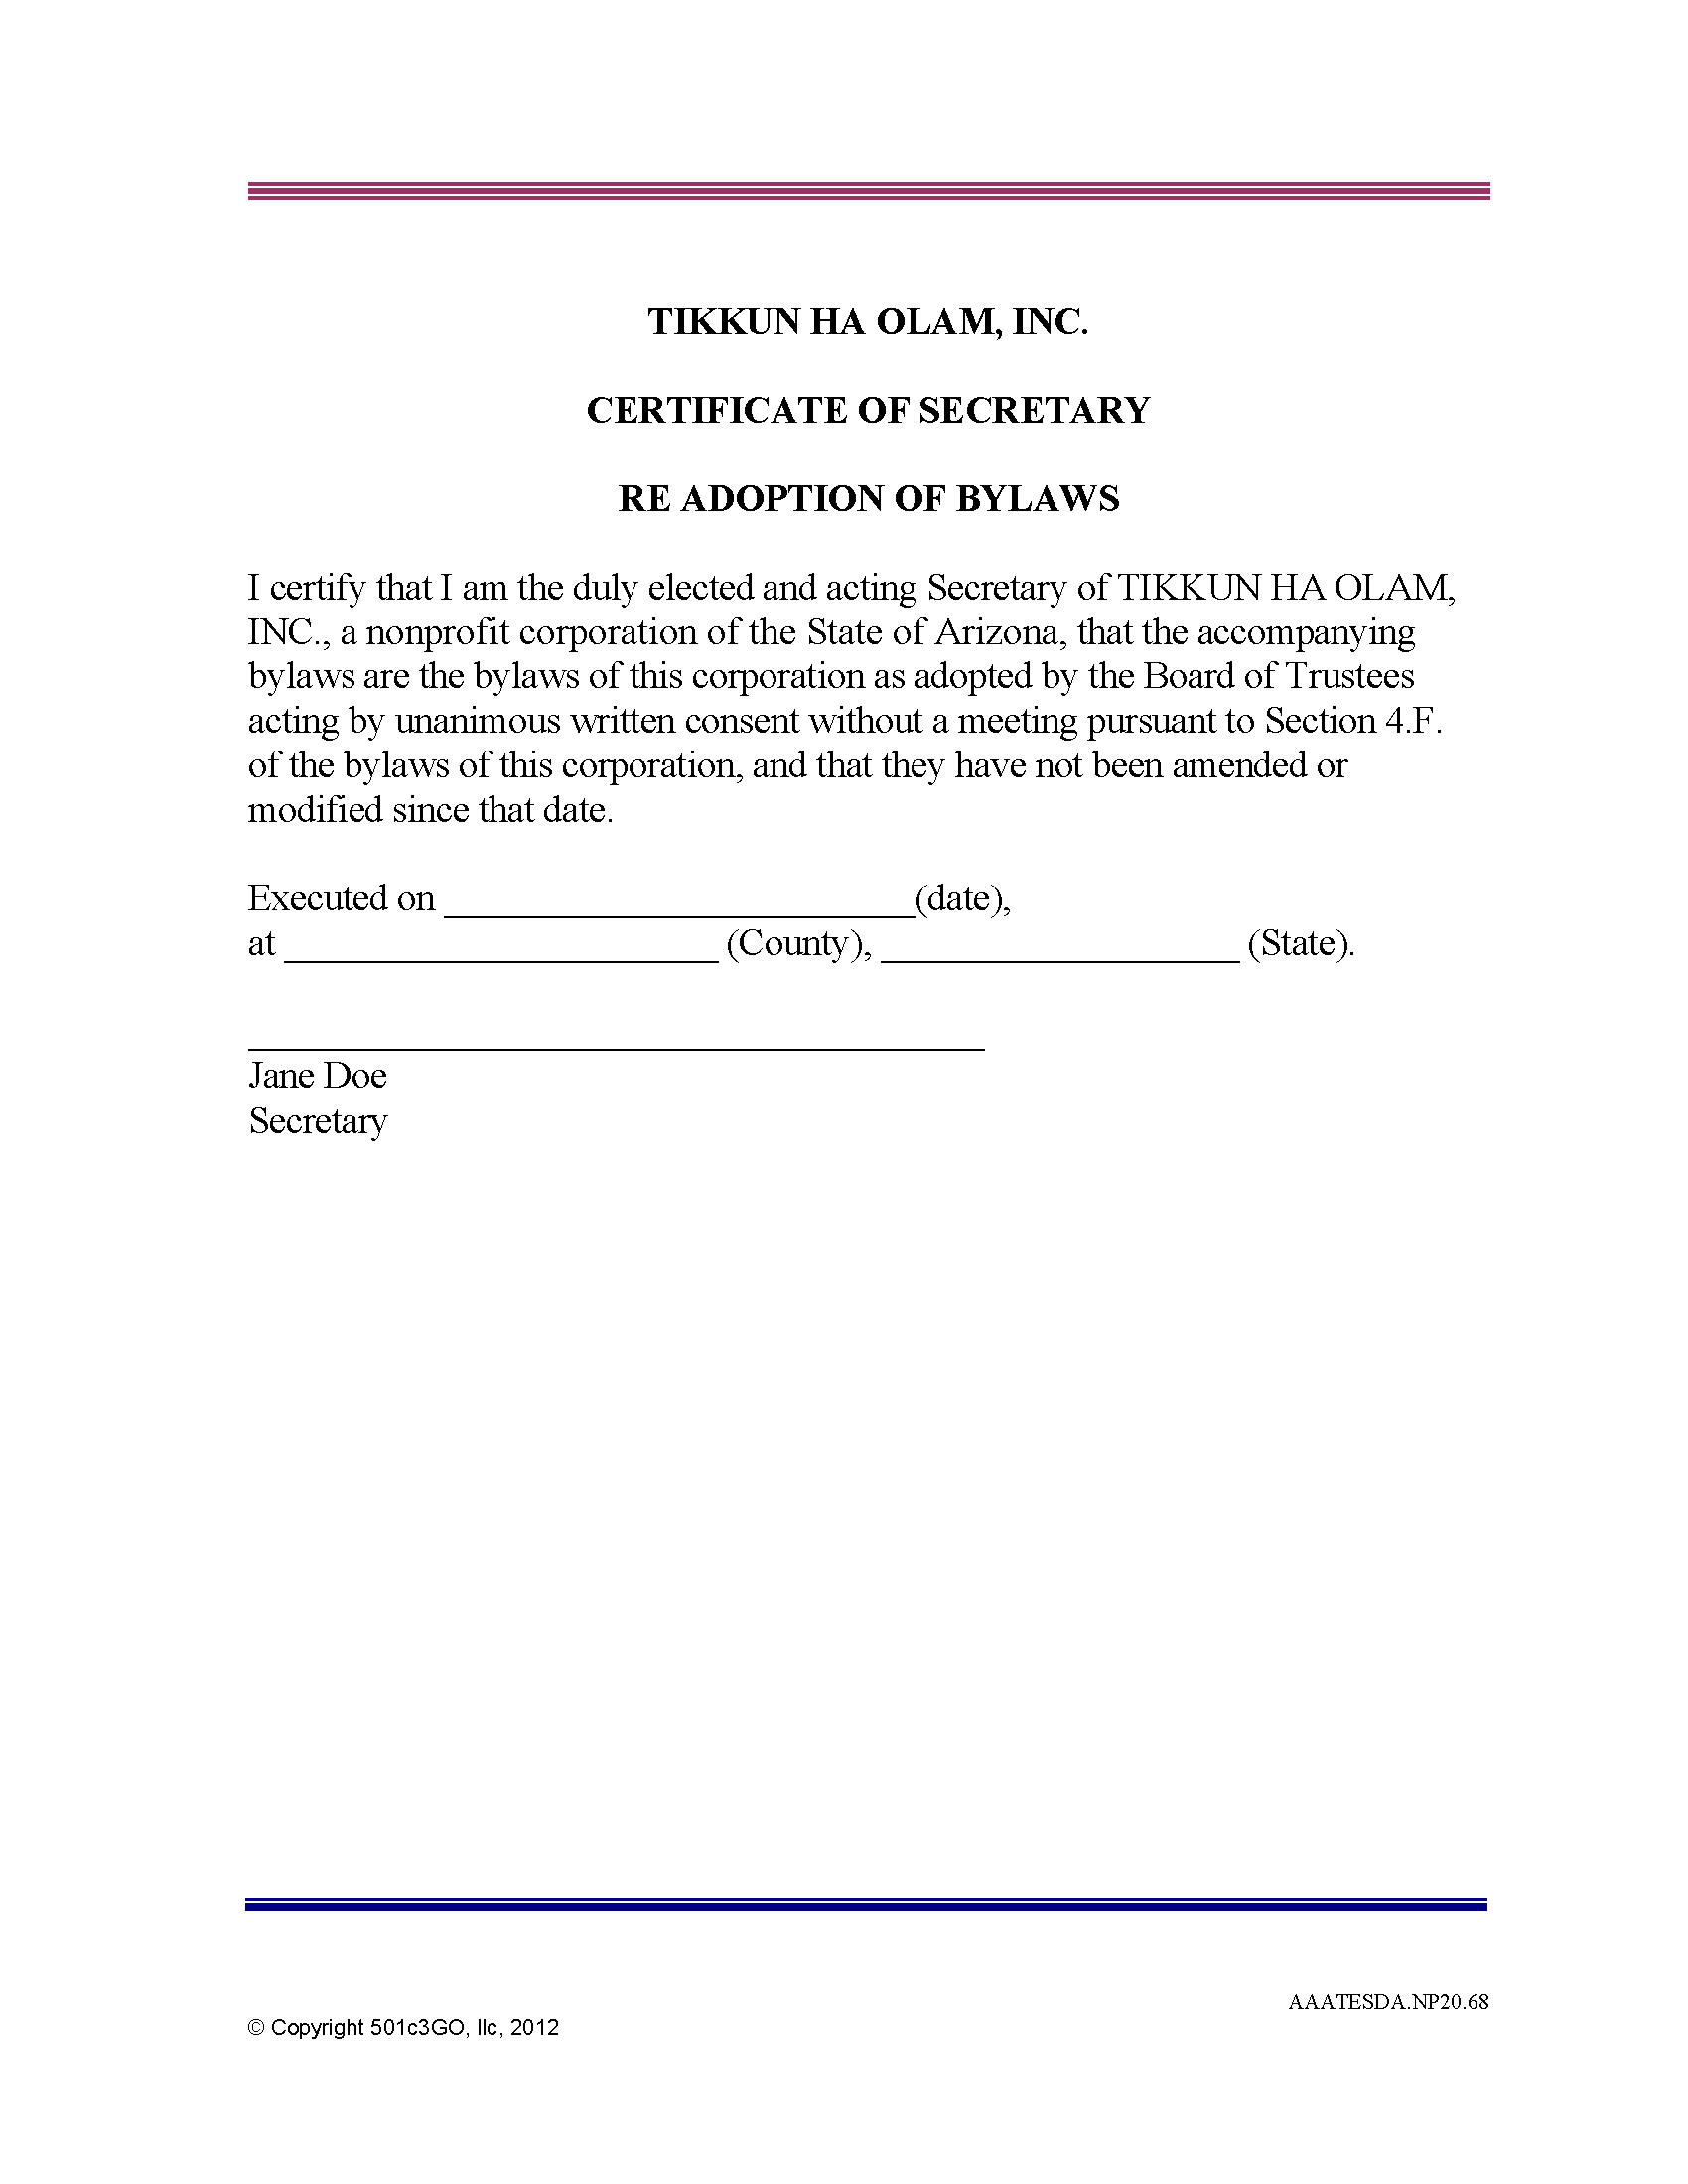 Certificate Of Secretary Re Adoption Of Bylaws | 501C3Go Intended For Corporate Secretary Certificate Template